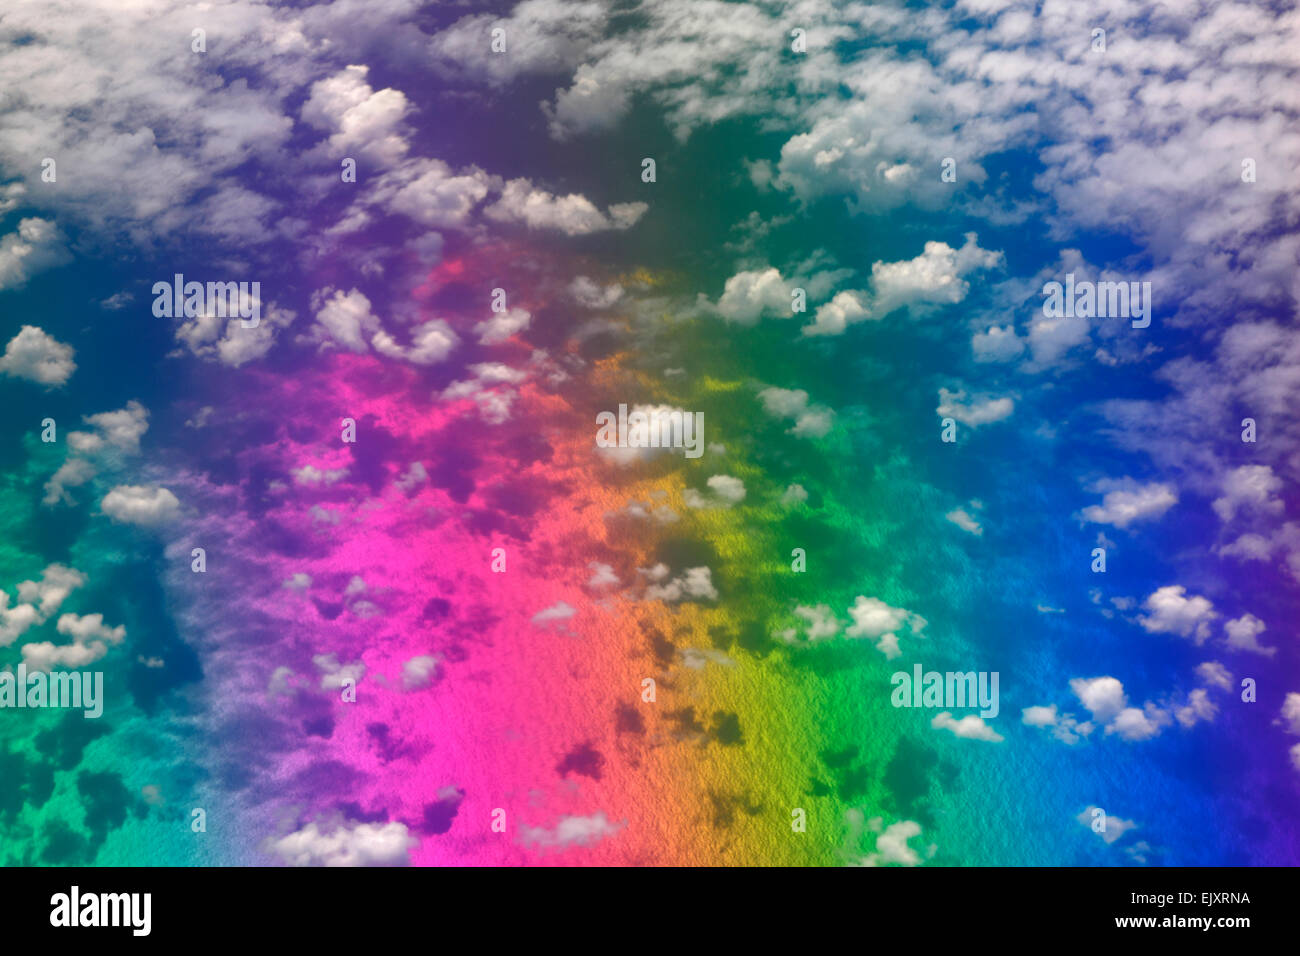 Rainbow colors over the ocean surface with clouds above - Stock Image